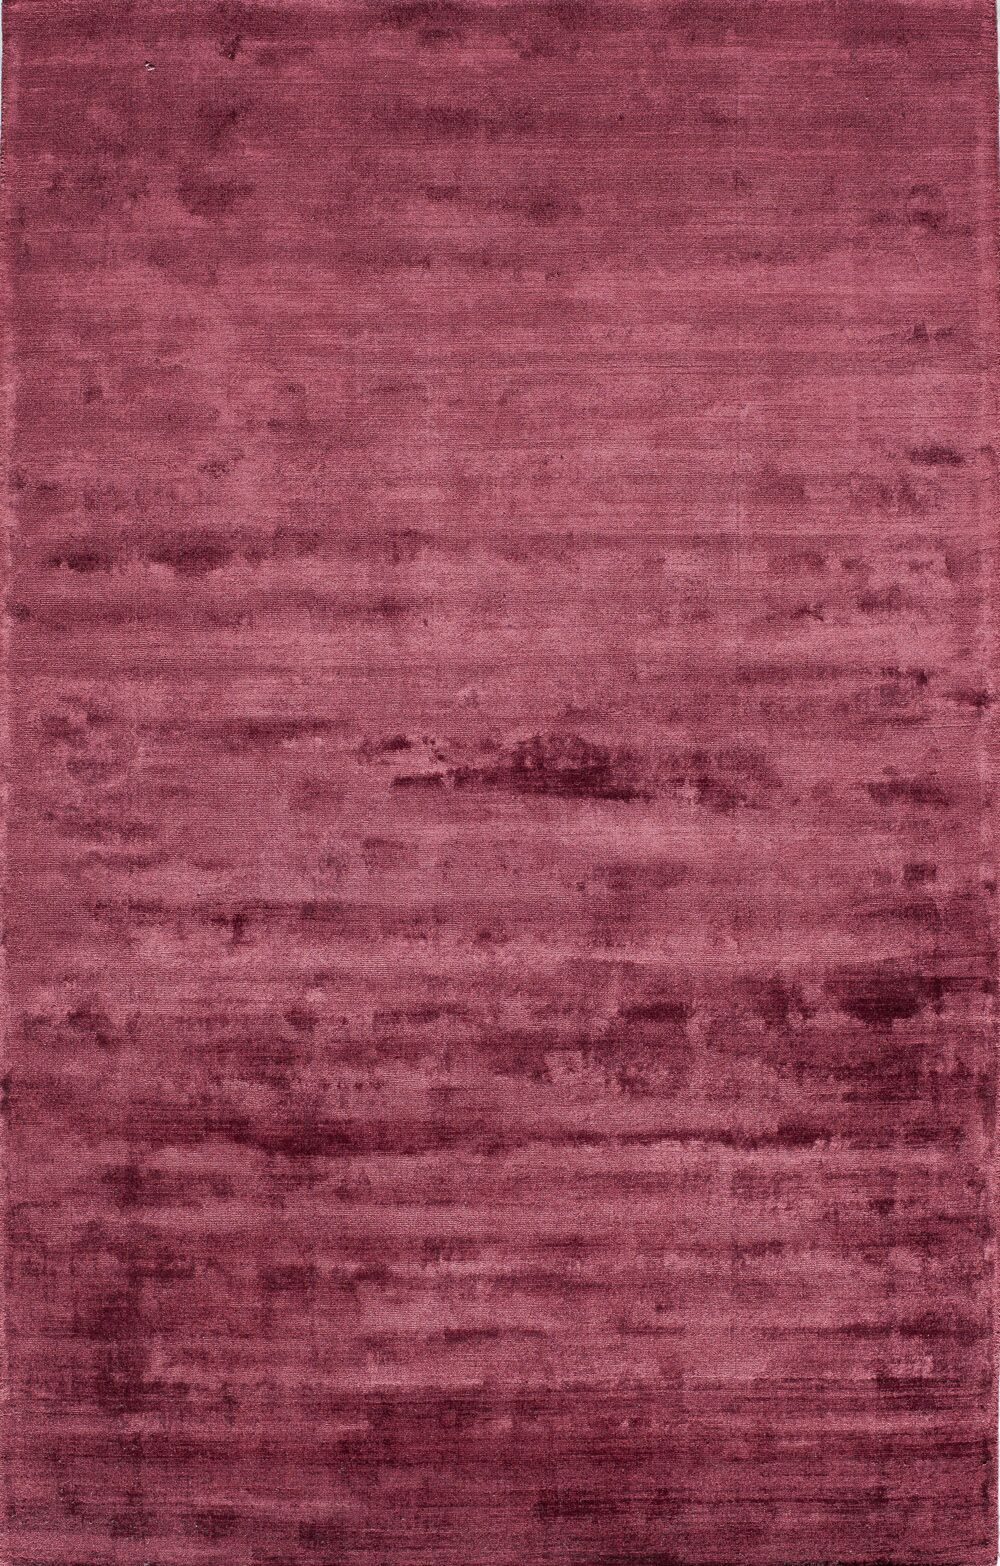 Hand-Tufted Red Area Rug Rug Size: Rectangle 5' x 8'